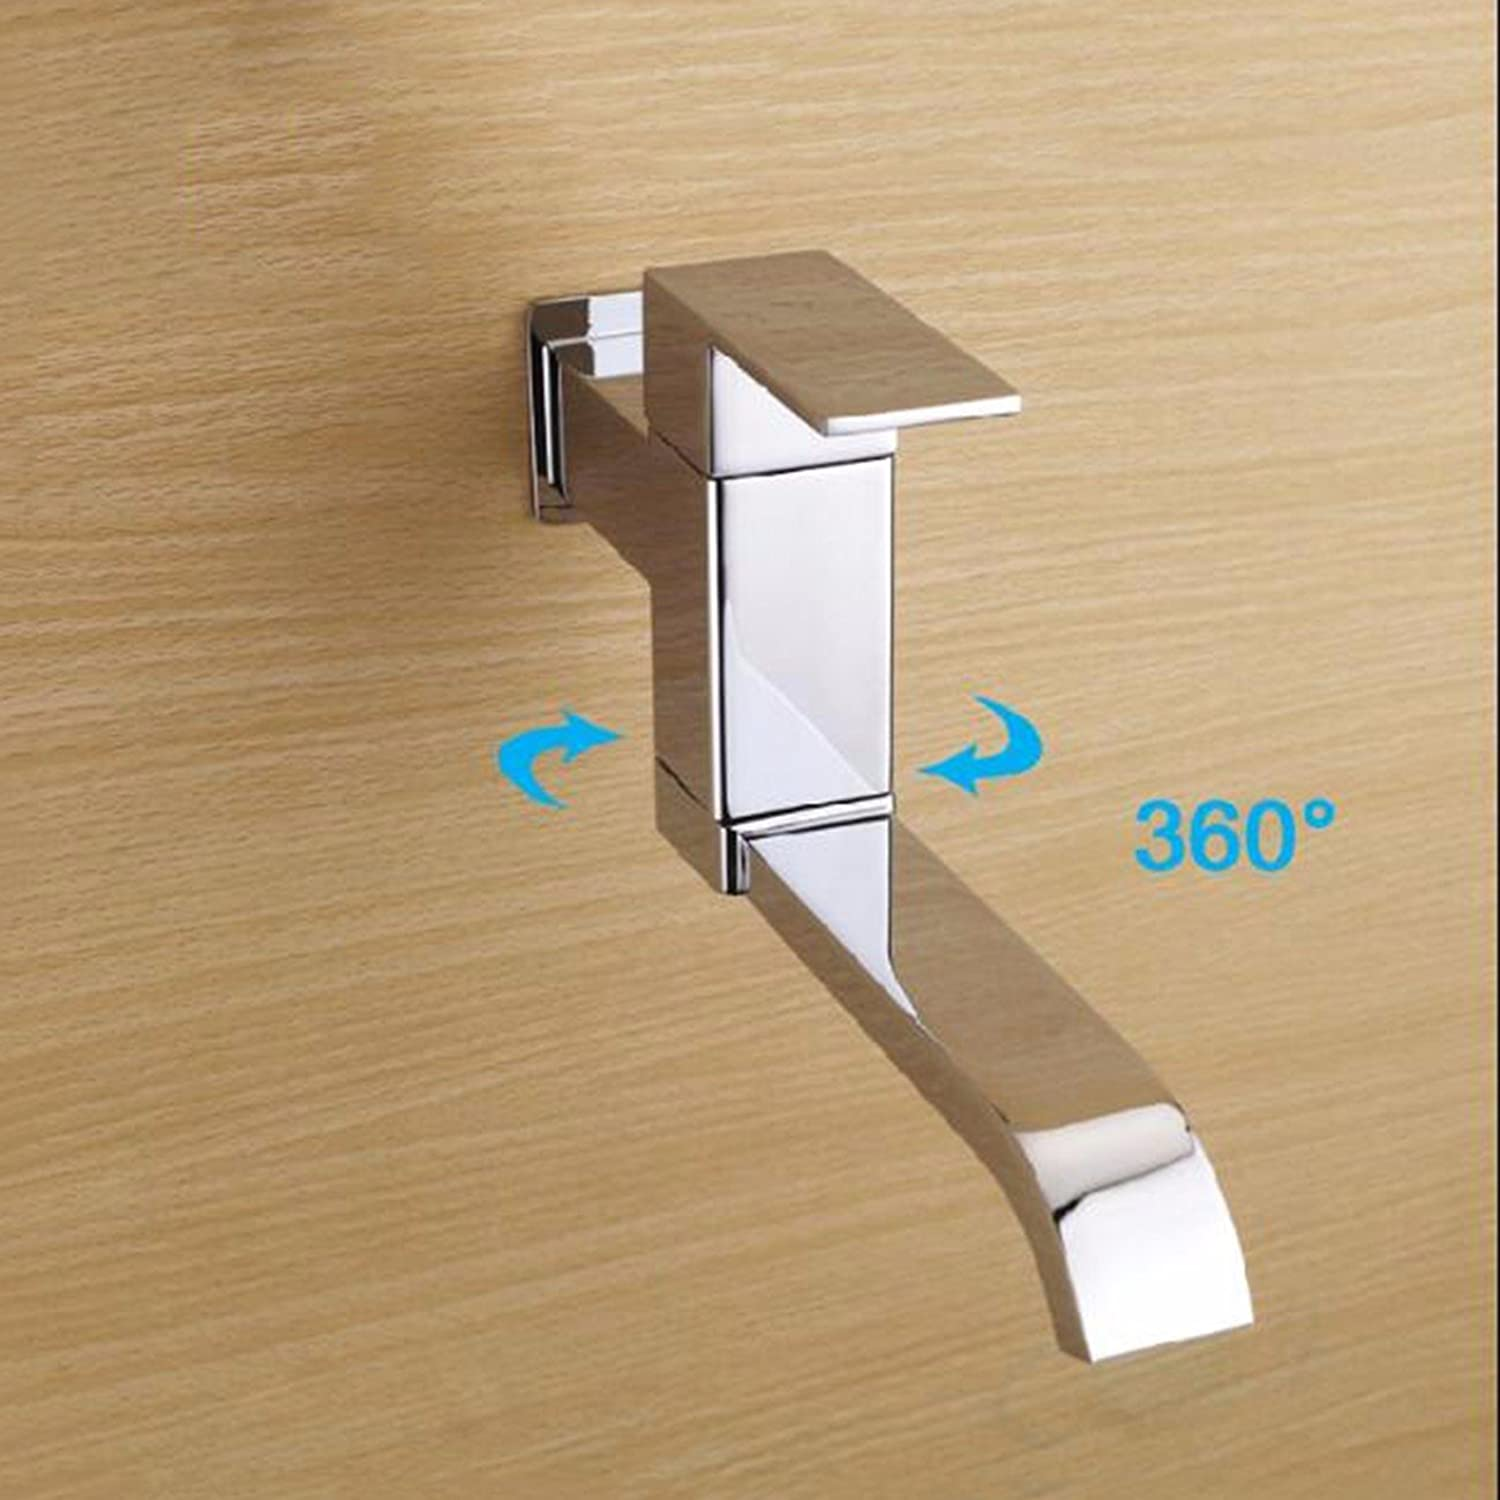 XJTNLB All copper kitchen faucet wall mounted single cold water tap lengthened balcony mop pool laundry pool faucet.